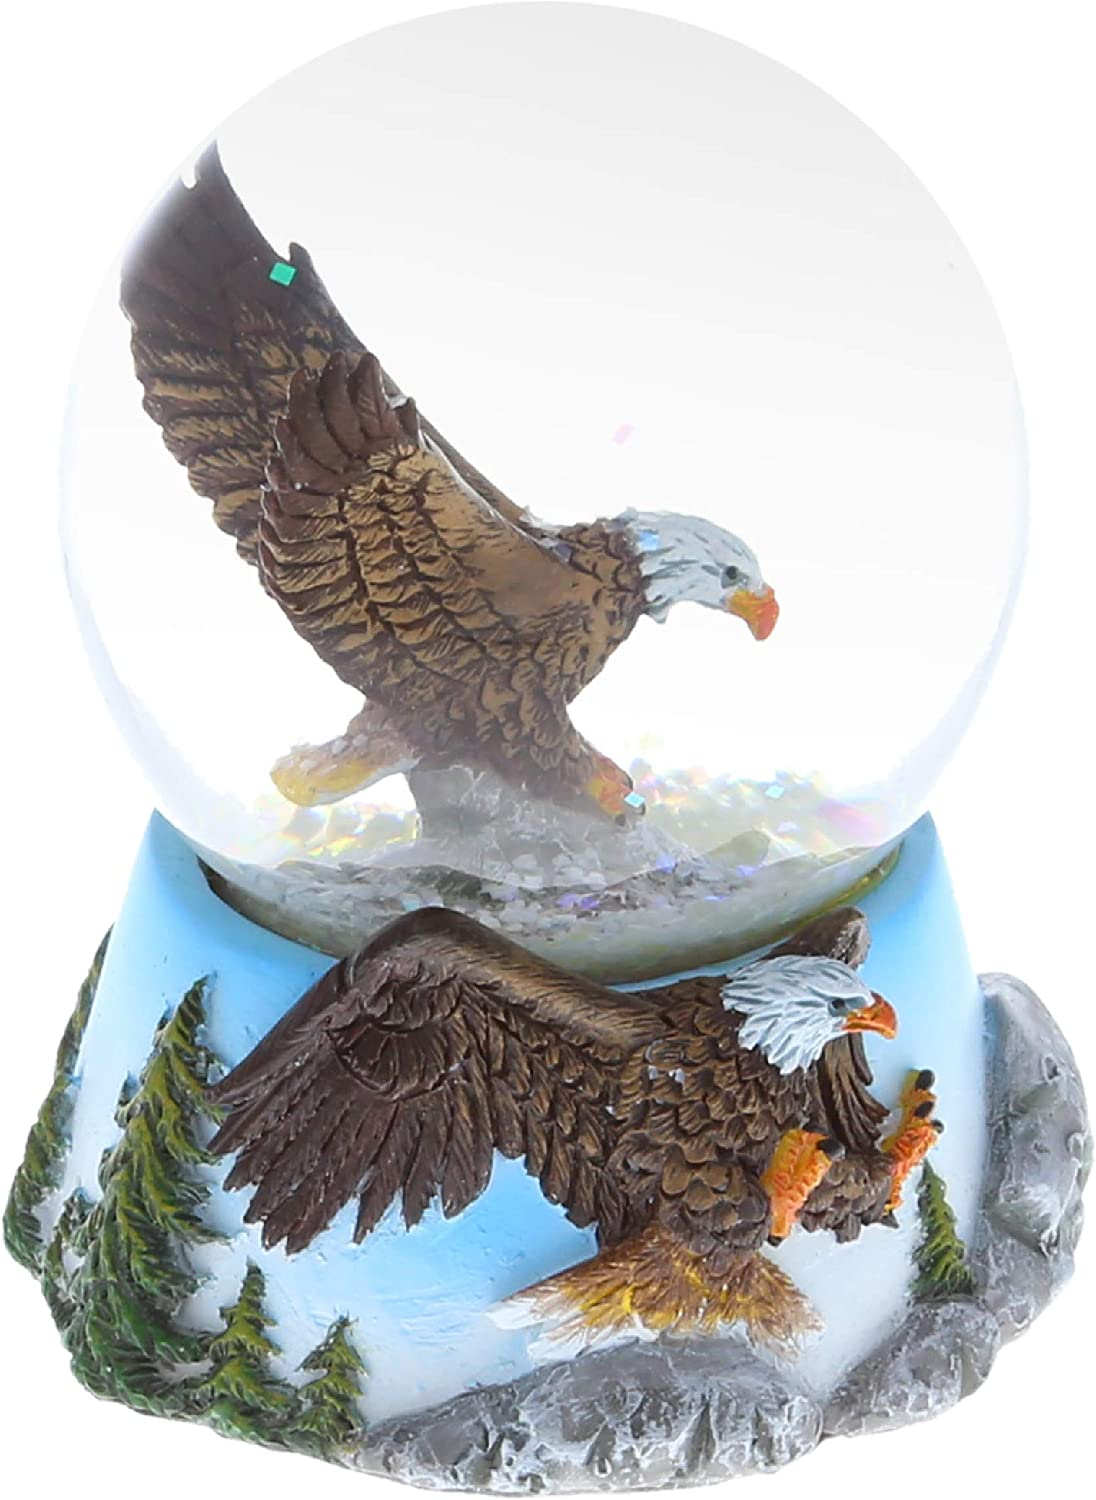 CoTa Global Animal Glitter Snow Globe Glass Collectibles, Cool Land & Ocean Decor Wildlife Figurines Snow Globes Centerpiece, Nautical Water Globes For Home Decor & Shelf Decorations 65mm - Bald Eagle